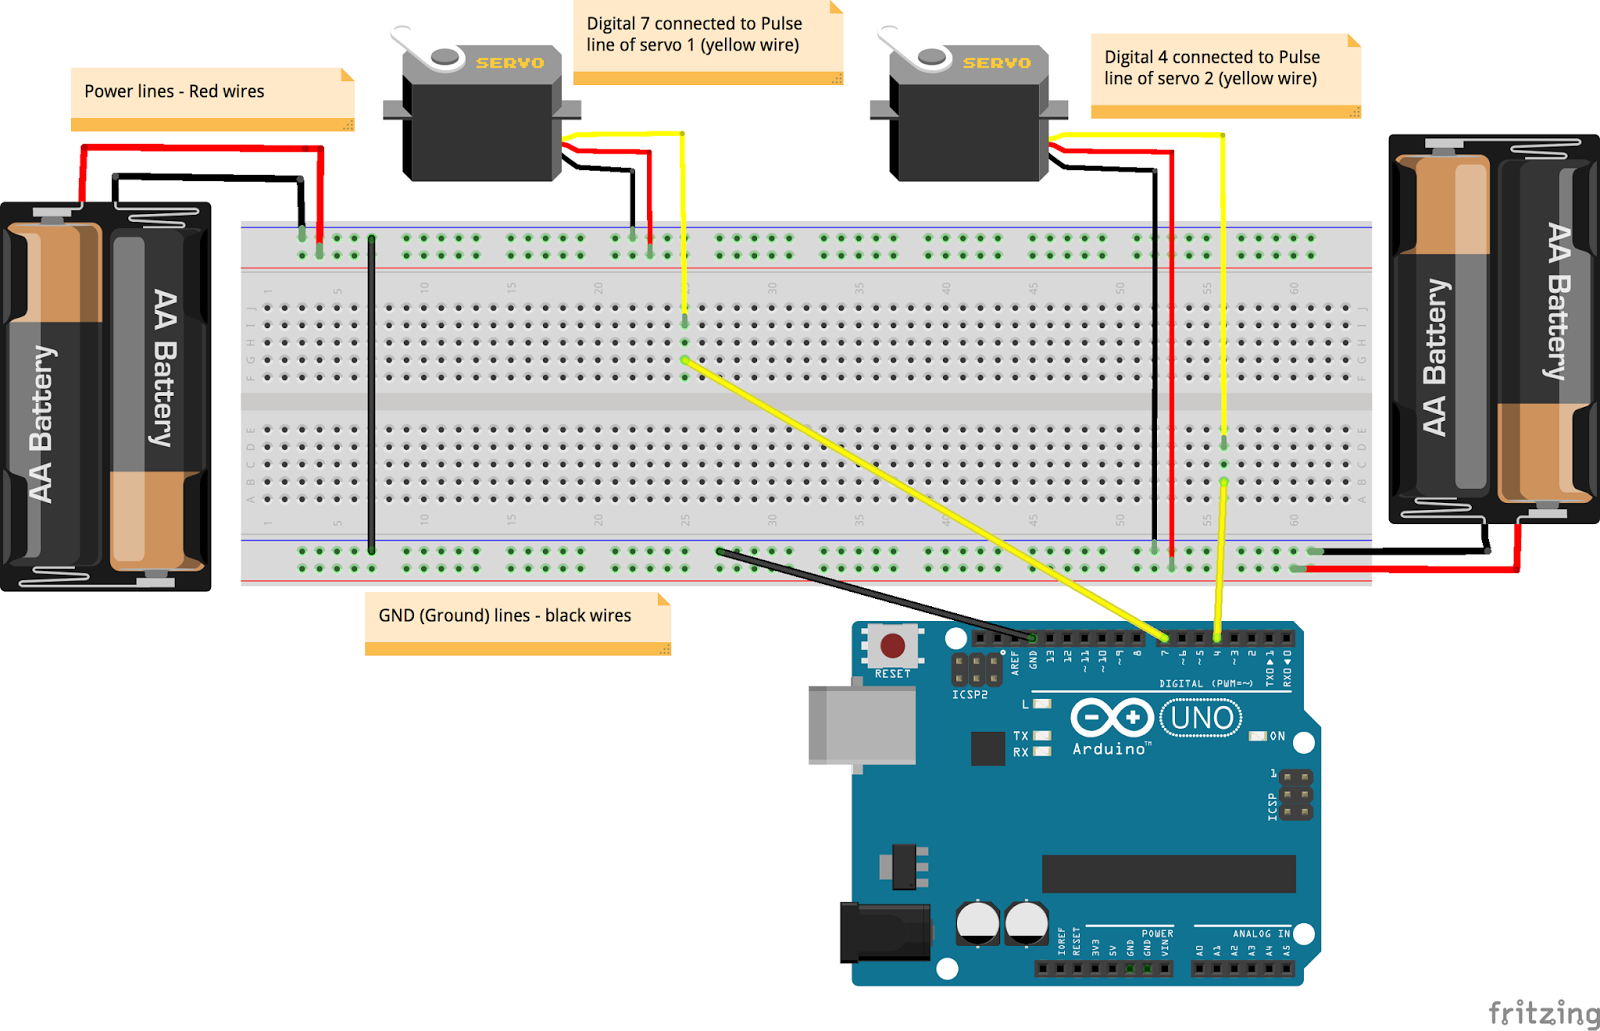 Move My Robot S4a Scratch For Arduino Project A Keyboard Wiring Vs Color Coding The Jumper Wires Used Connections Would Make It Really Easy Kids To Do I Have Provided Step By Diagrams